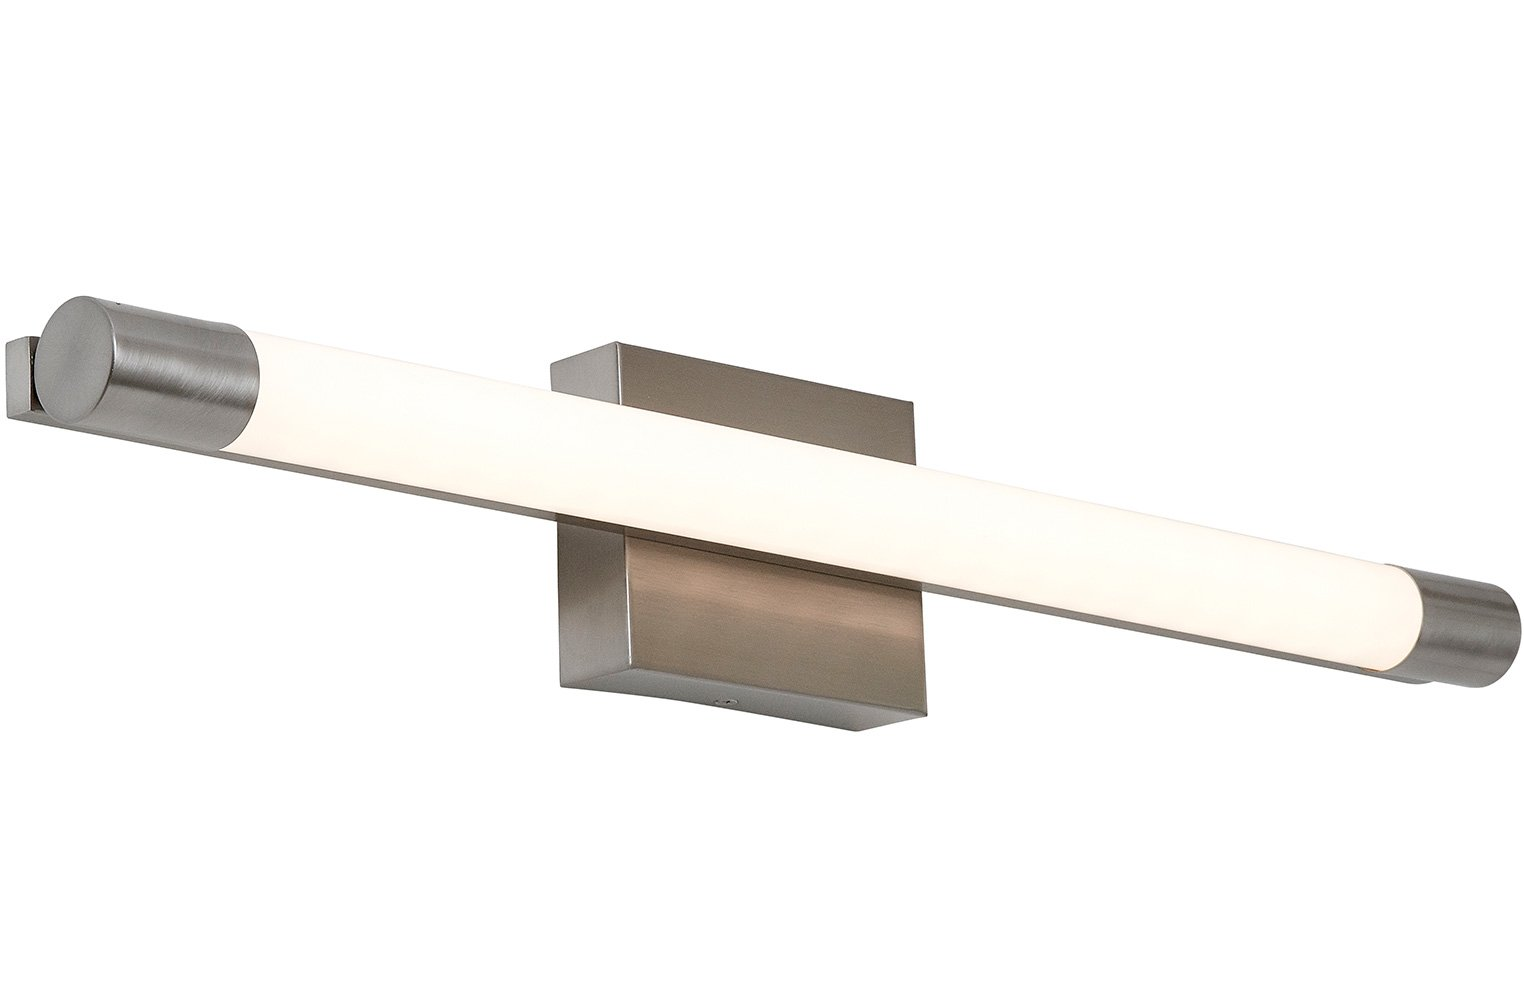 NEW Slim Line Modern Frosted Bathroom Vanity Light Fixture | Contemporary Sleek Dimmable LED Cylinder Bar Design | Vertical or Horizontal Tube Wall Sconce | 3000K Warm White 28'' by Hamilton Hills